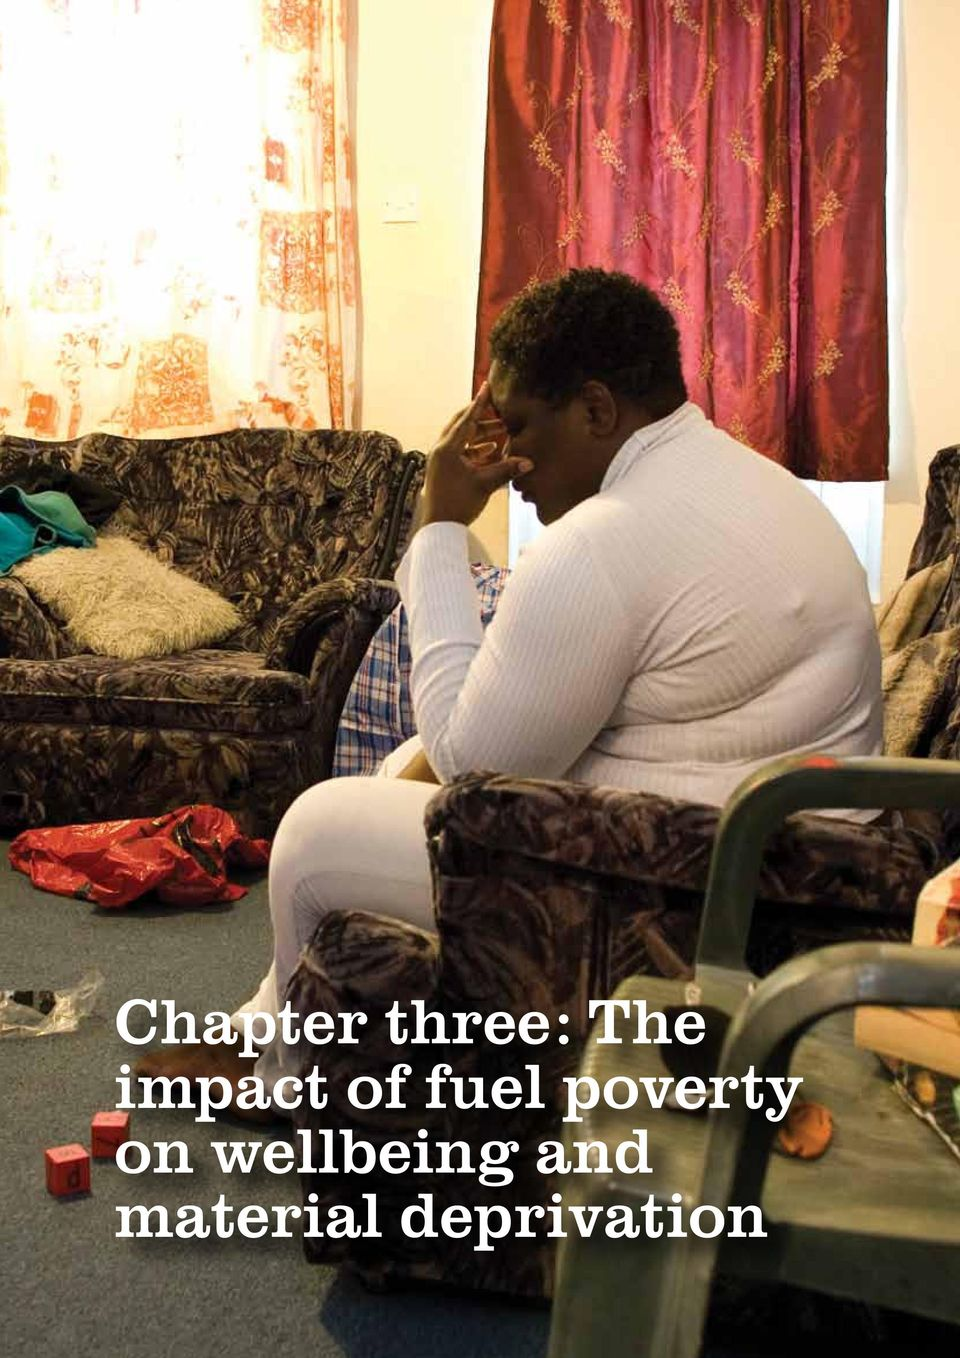 poverty on wellbeing and